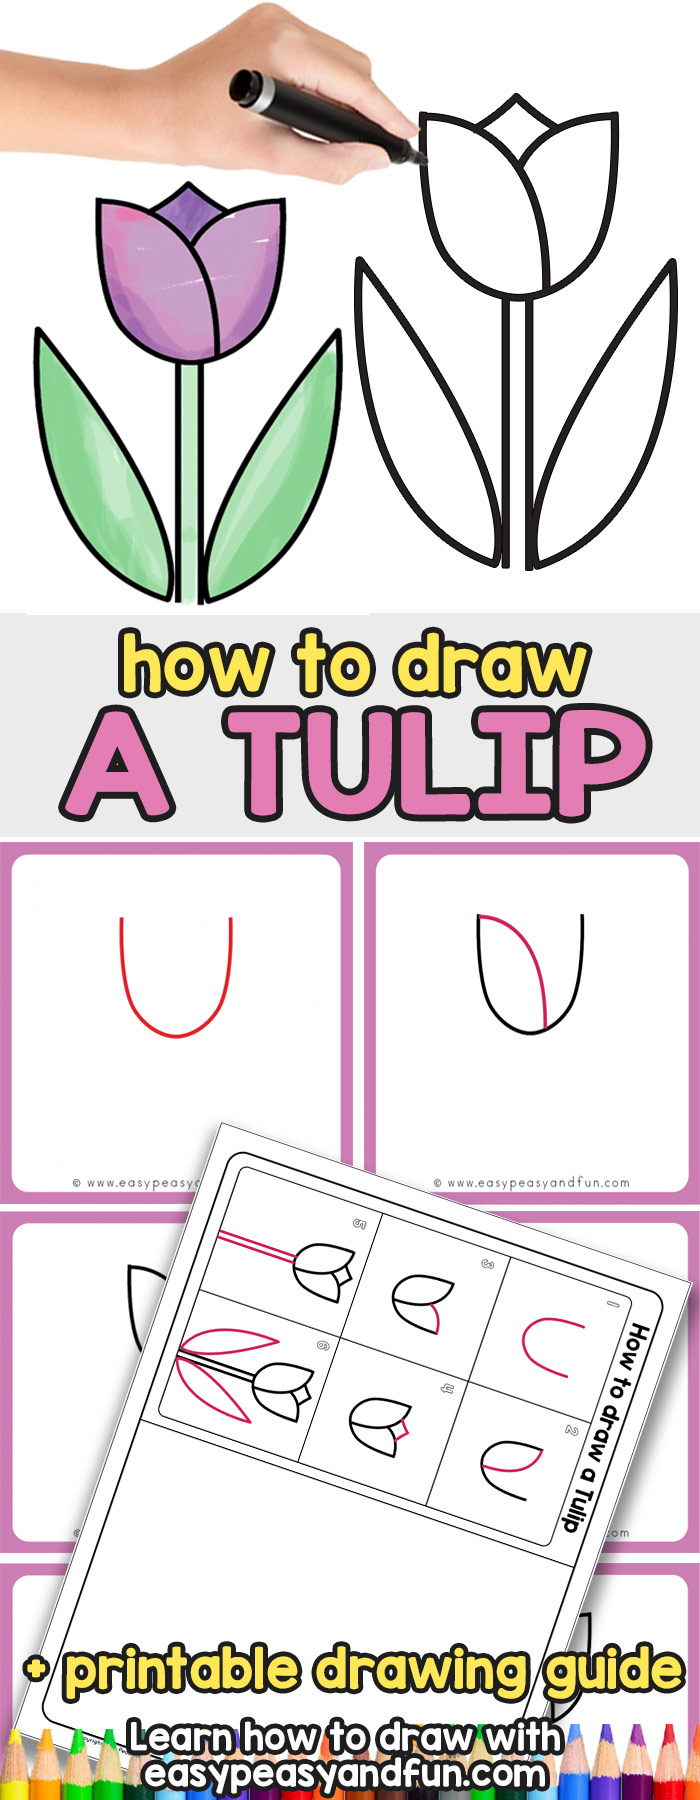 How to Draw a Tulip - Easy Step By Step Drawing Tutorial for Kids